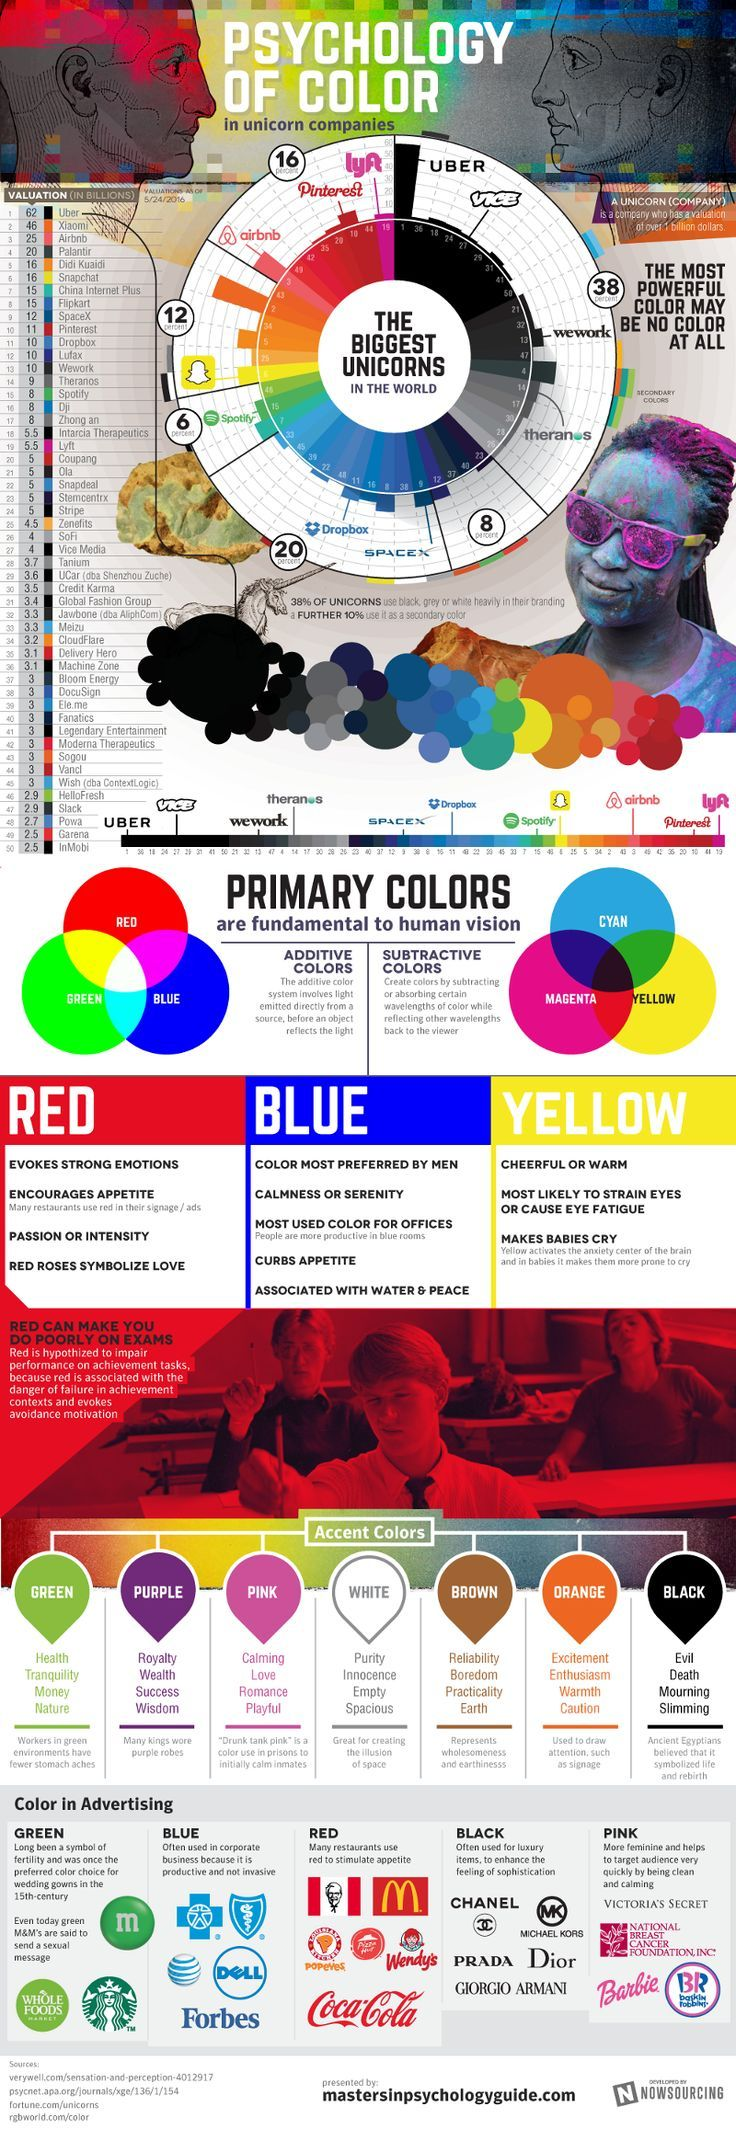 Psychology of color in branding